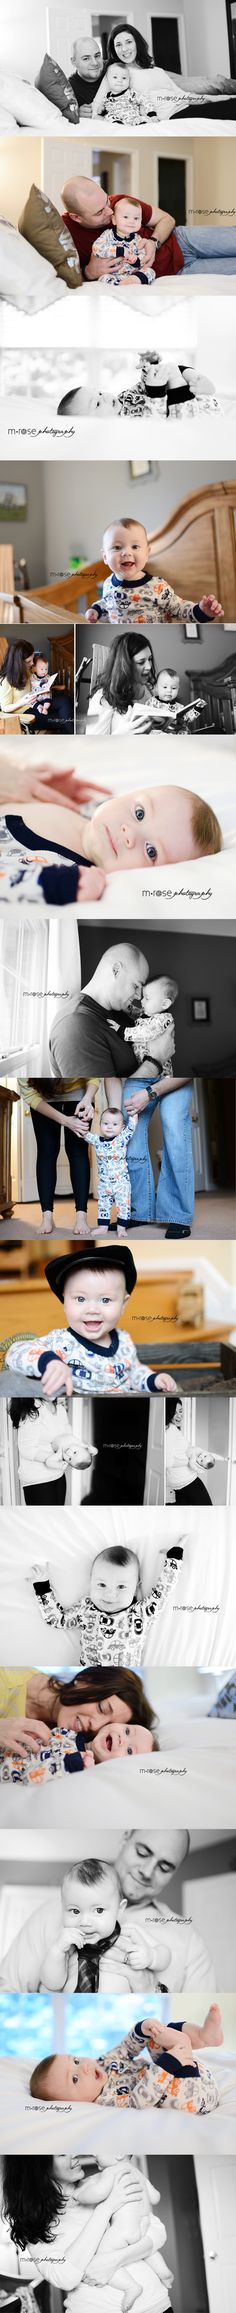 Indoor lifestyle session. Indoor six-month baby photography. 6 month old baby boy | M Rose Photography